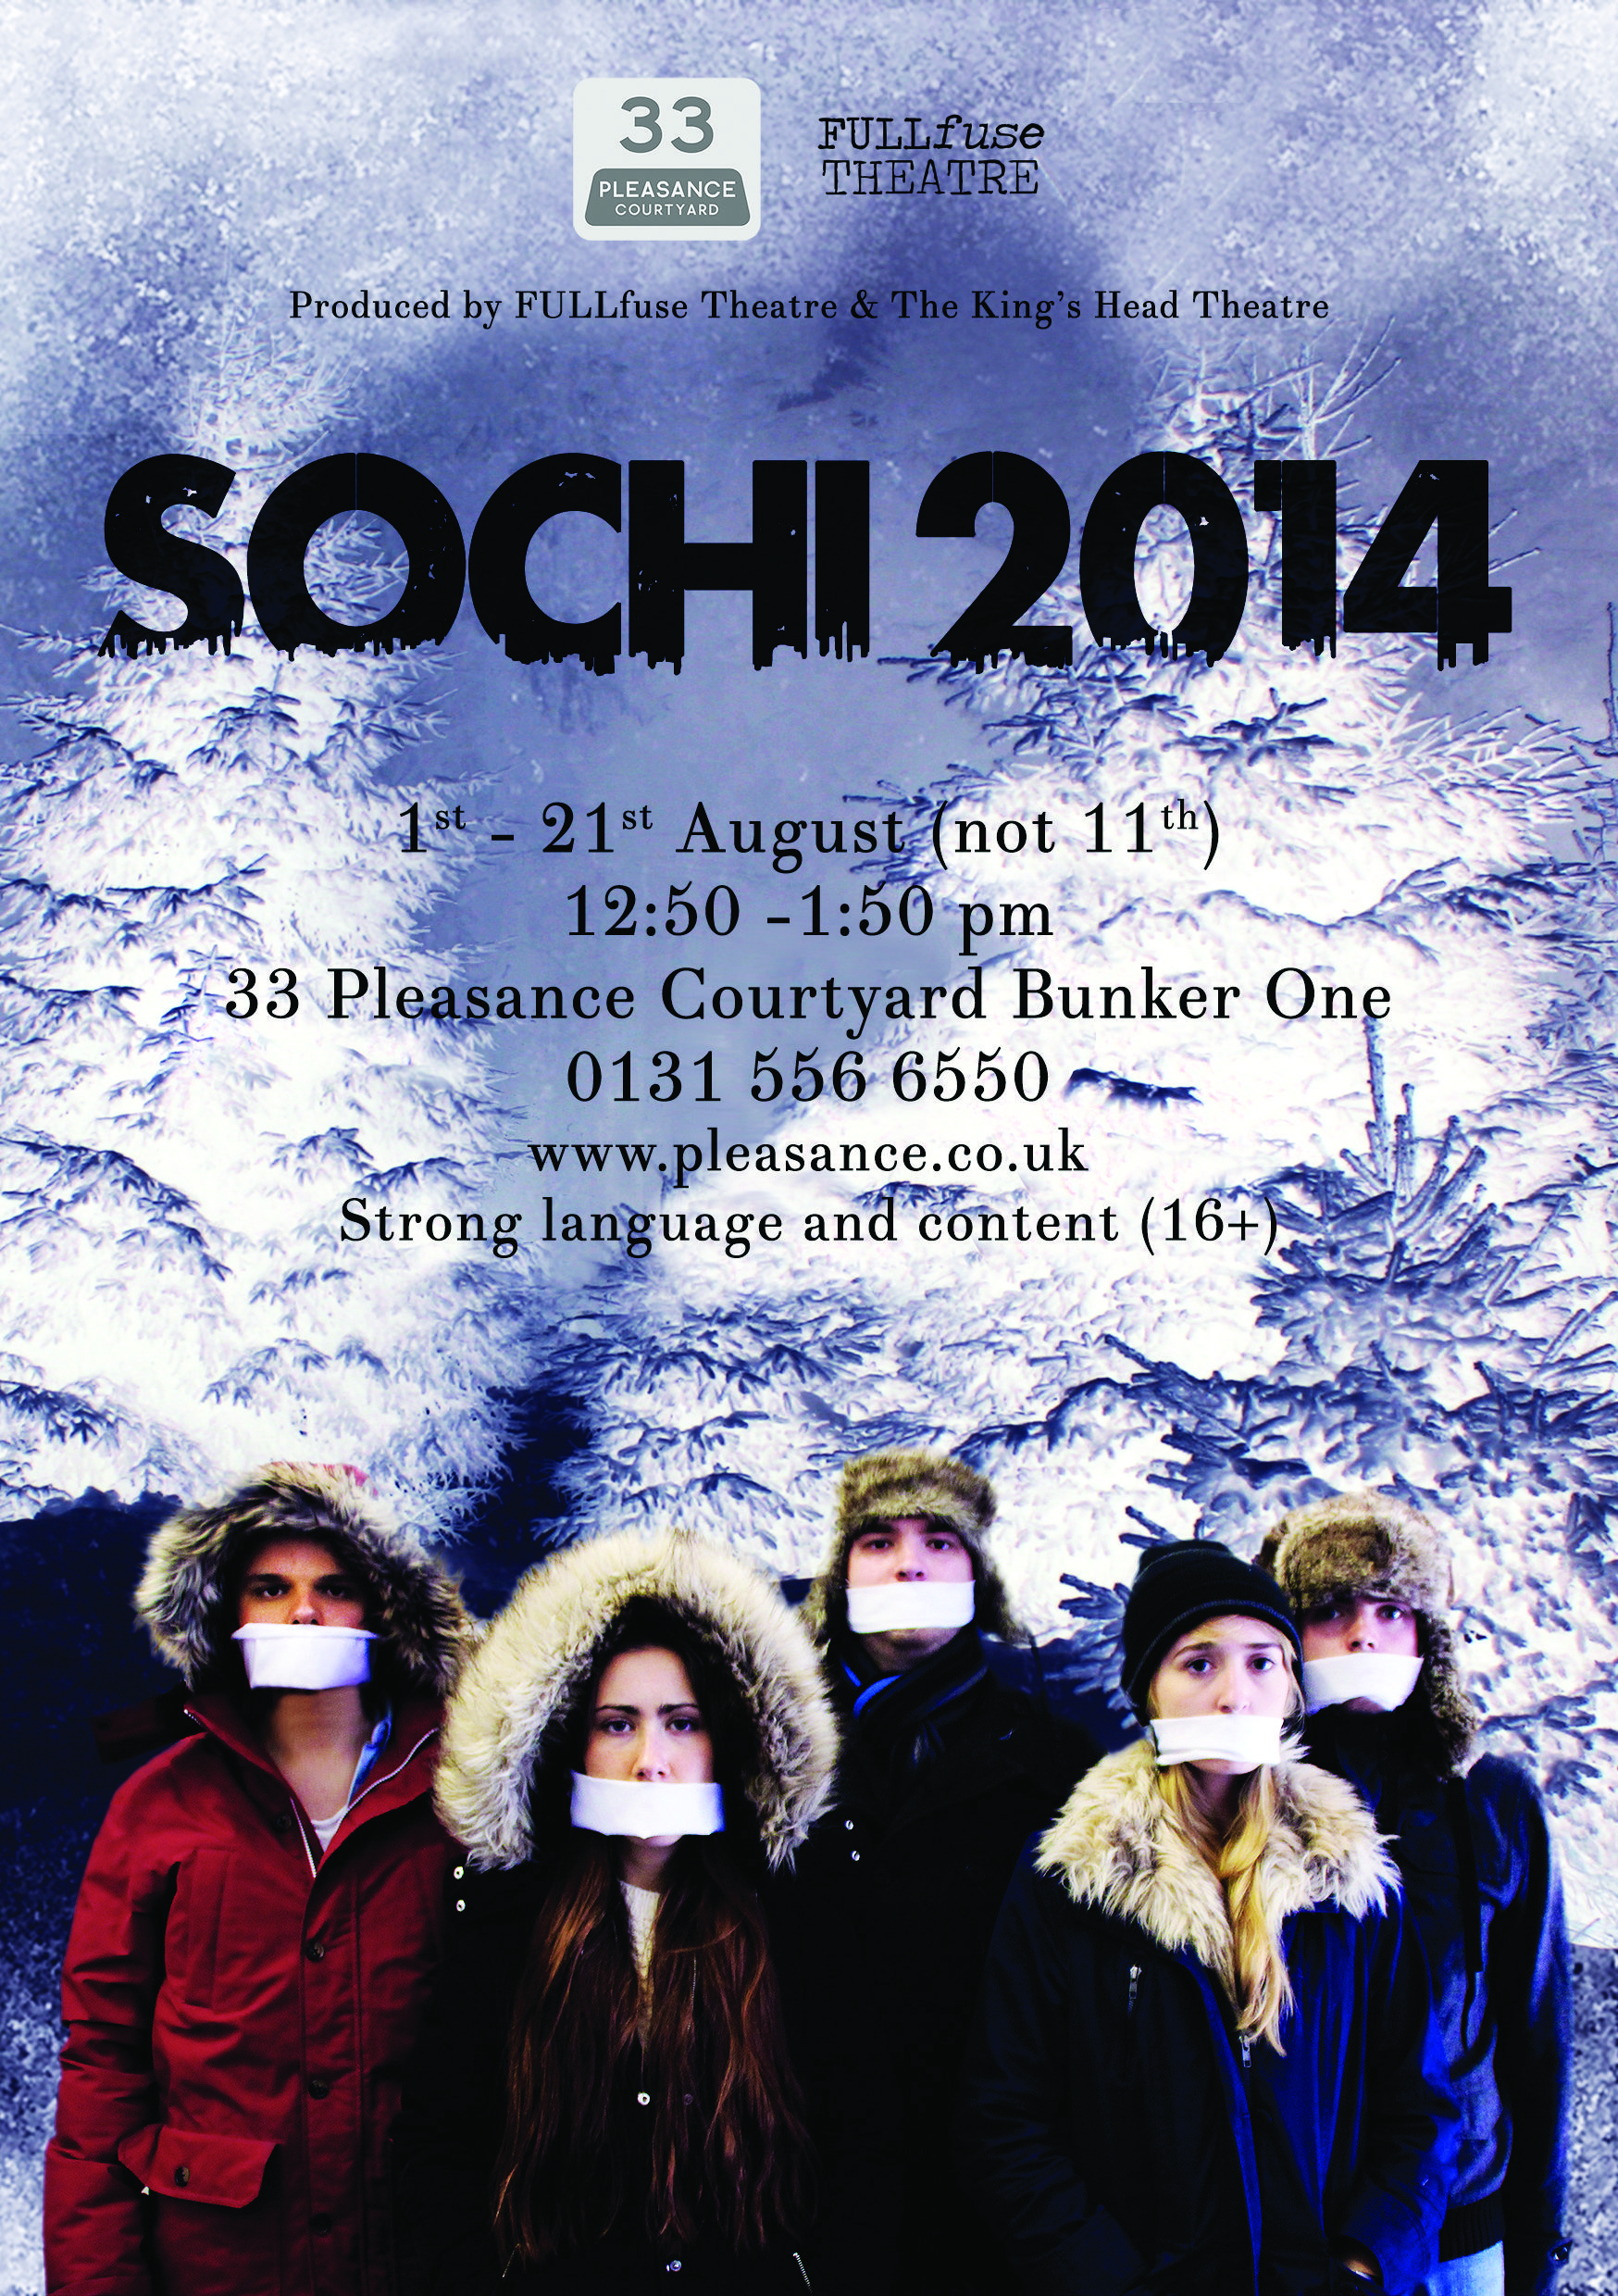 I'm producing this, so take a look!  'Sochi 2014' at this year's Edinburgh Fringe from FULLfuse Theatre and The King's Head Theatre. The Pleasance Courtyard, Bunker One, 12:50 pm to 1:50 pm from 1 August to 21 August (except for 11).  #edinburghfringe #edfringe